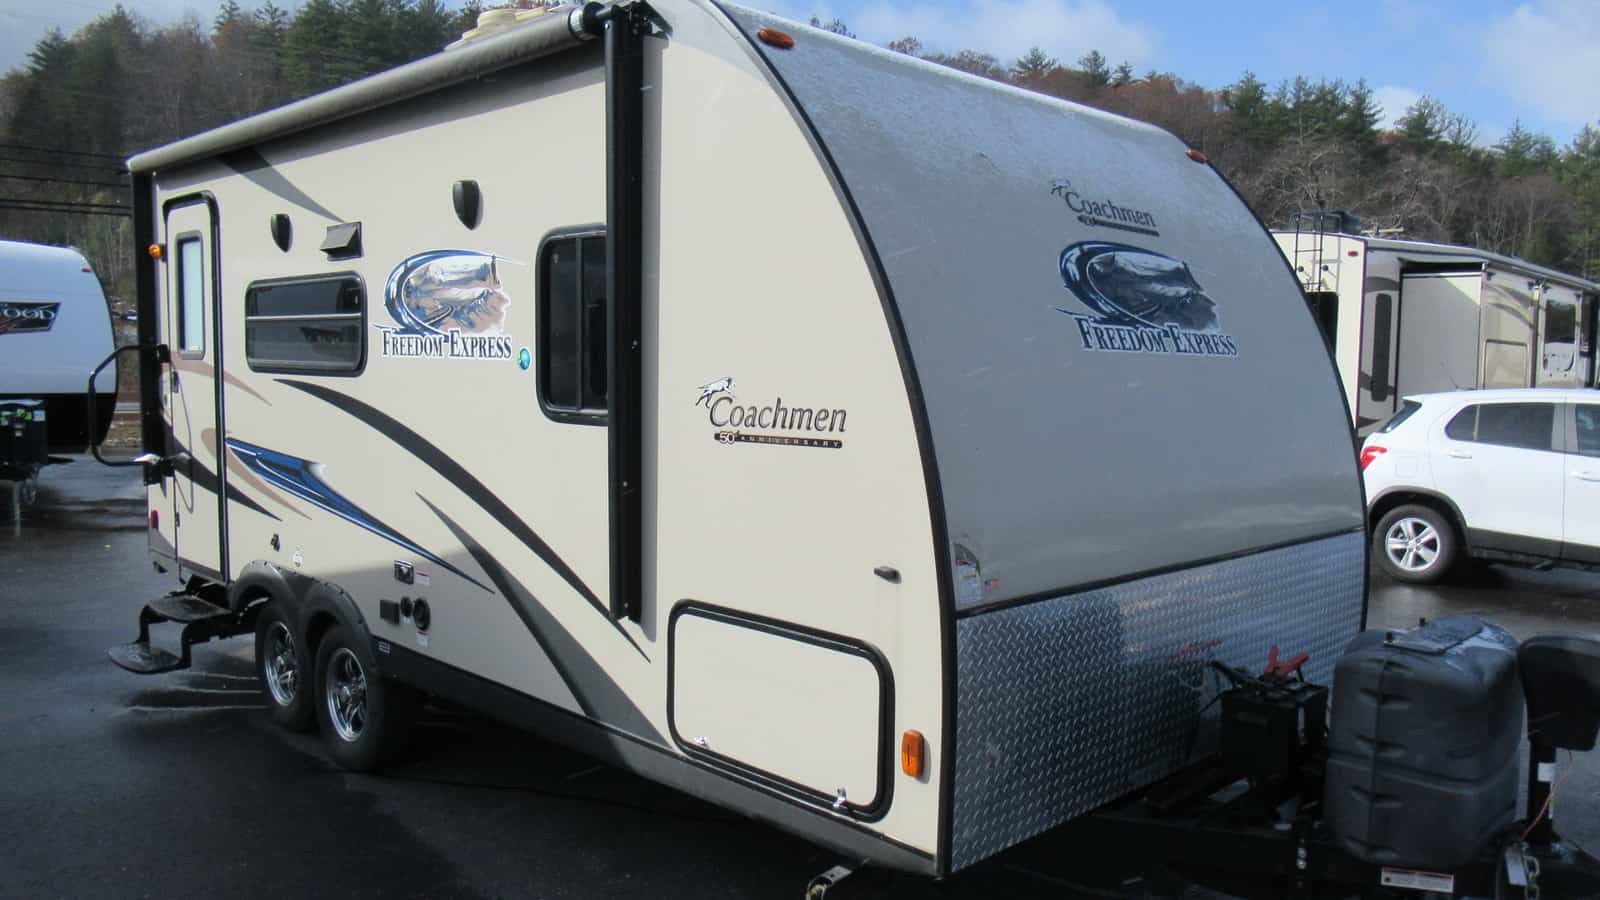 USED 2014 COACHMEN FREEDOM EXPRESS 192RBS